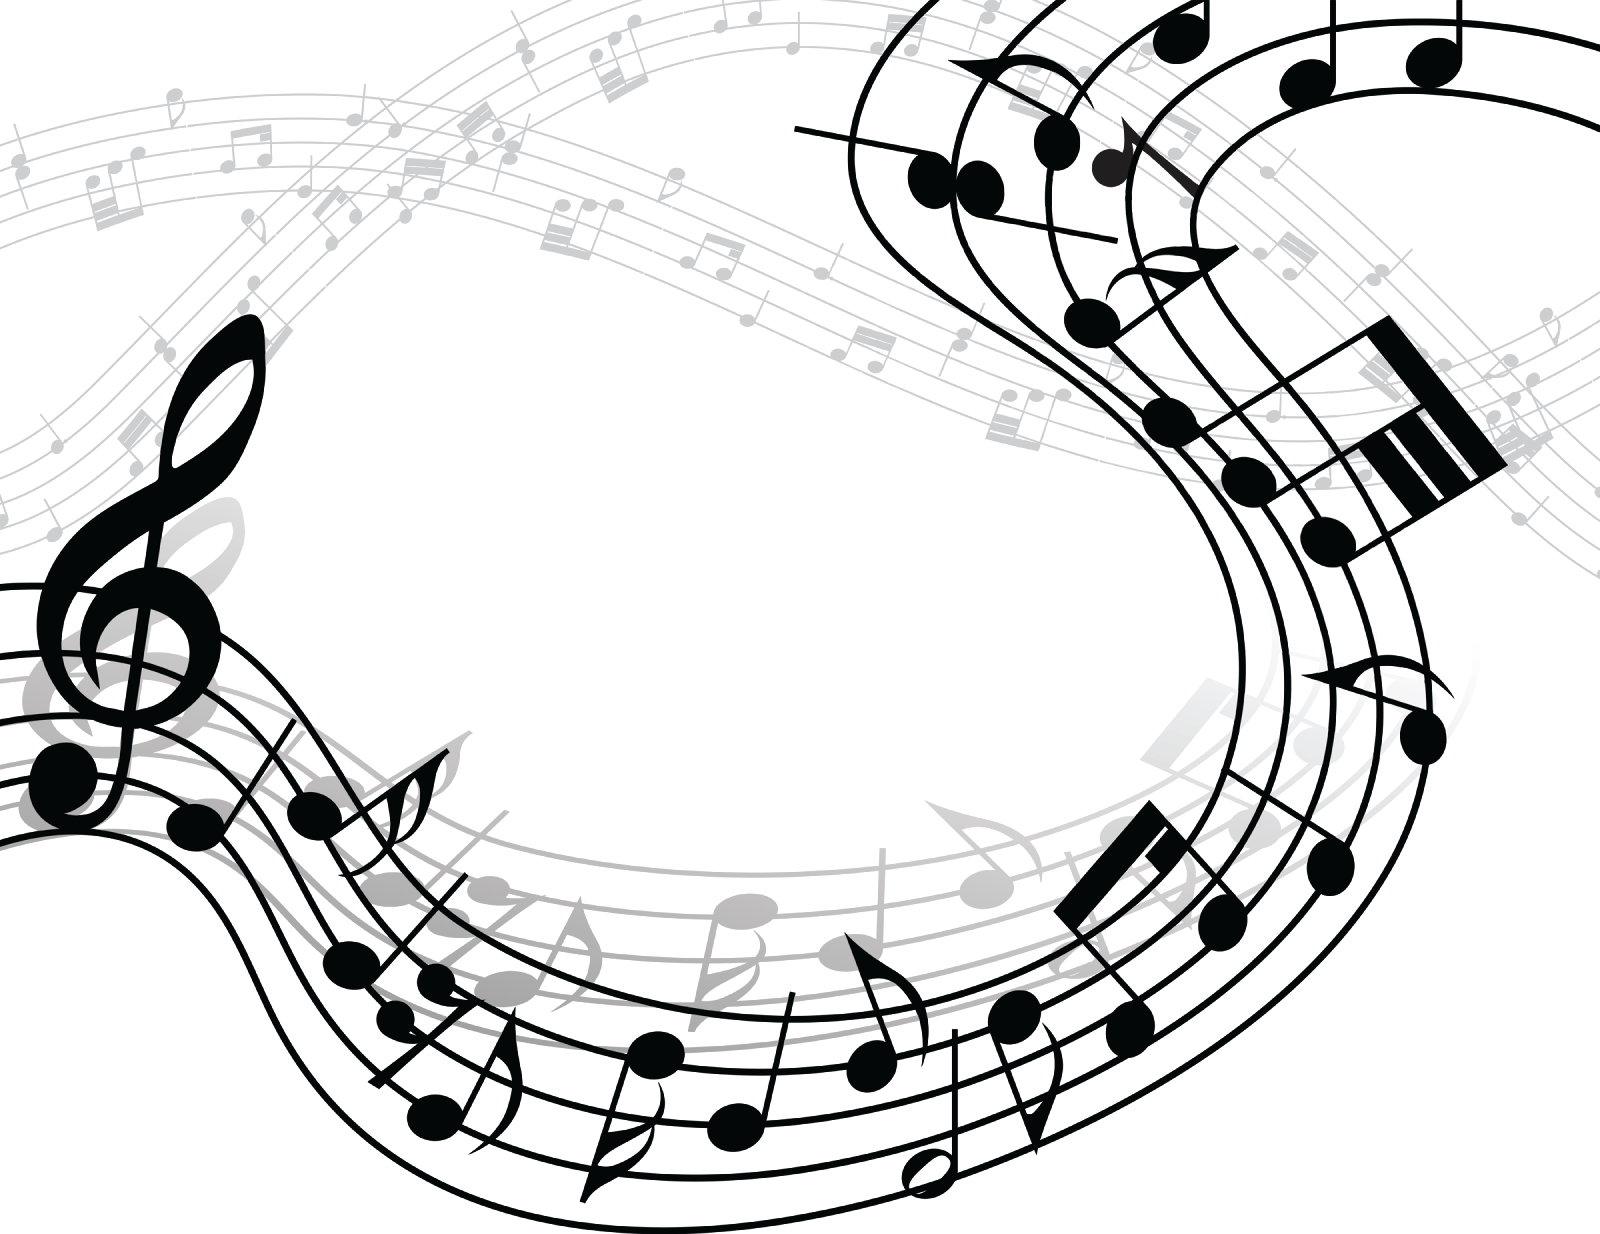 Musical notes background png. Free images music fresh